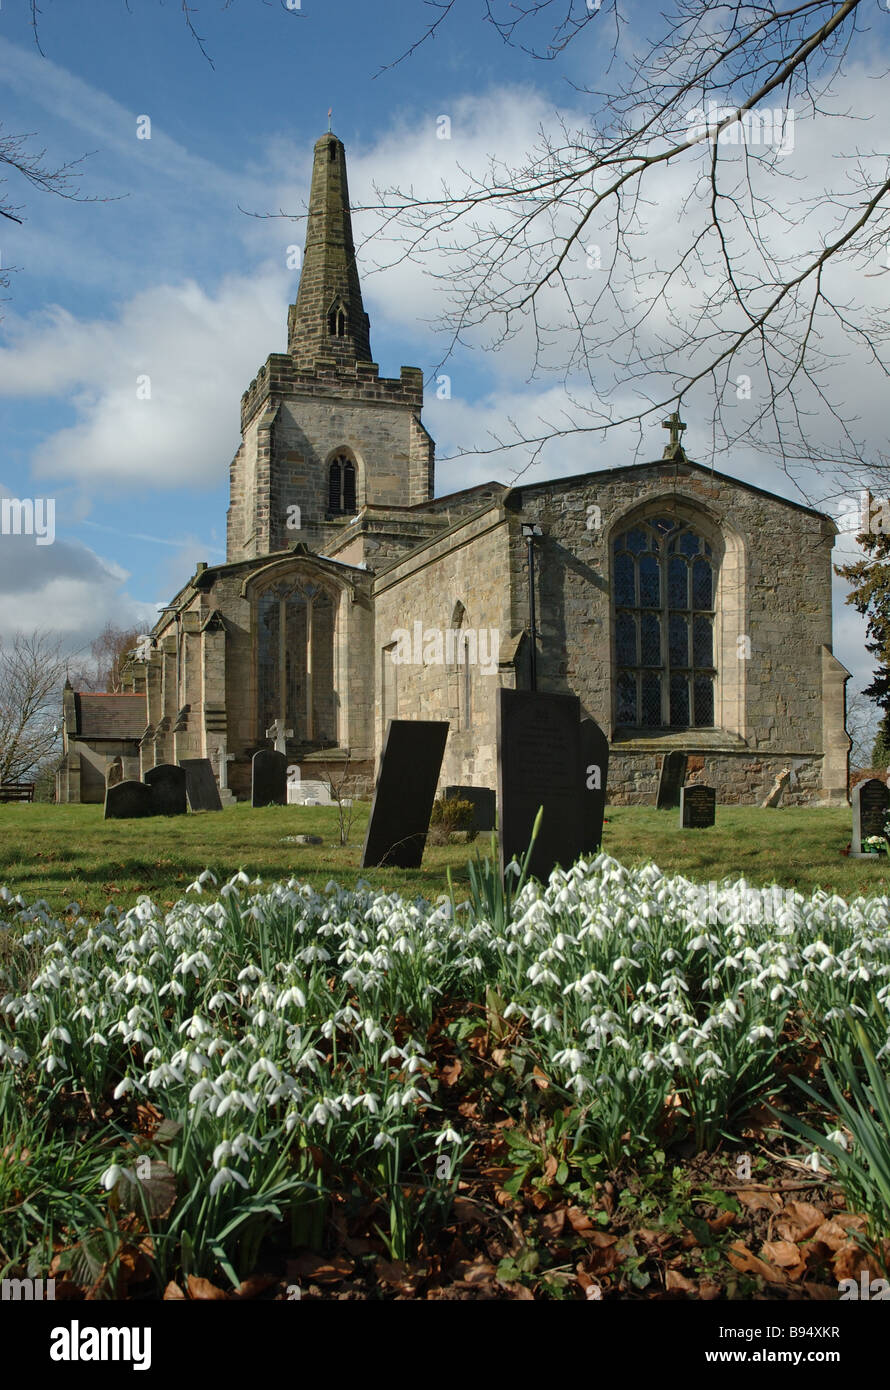 display of snowdrops, Orton on the Hill, Leicestershire, England, UK - Stock Image